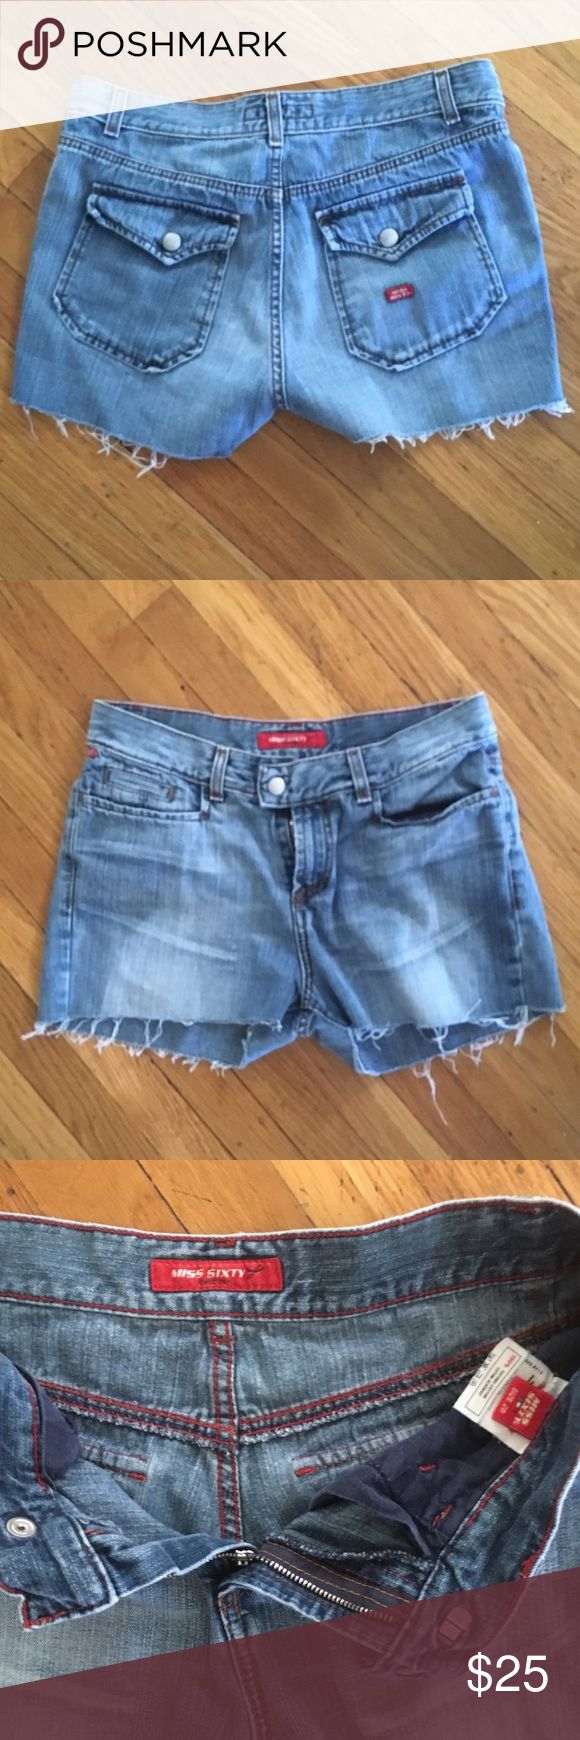 Miss Sixty Jean Cutoffs Adorable Miss Sixty Jean cutoff shorts, in great condition Miss Sixty Shorts Jean Shorts